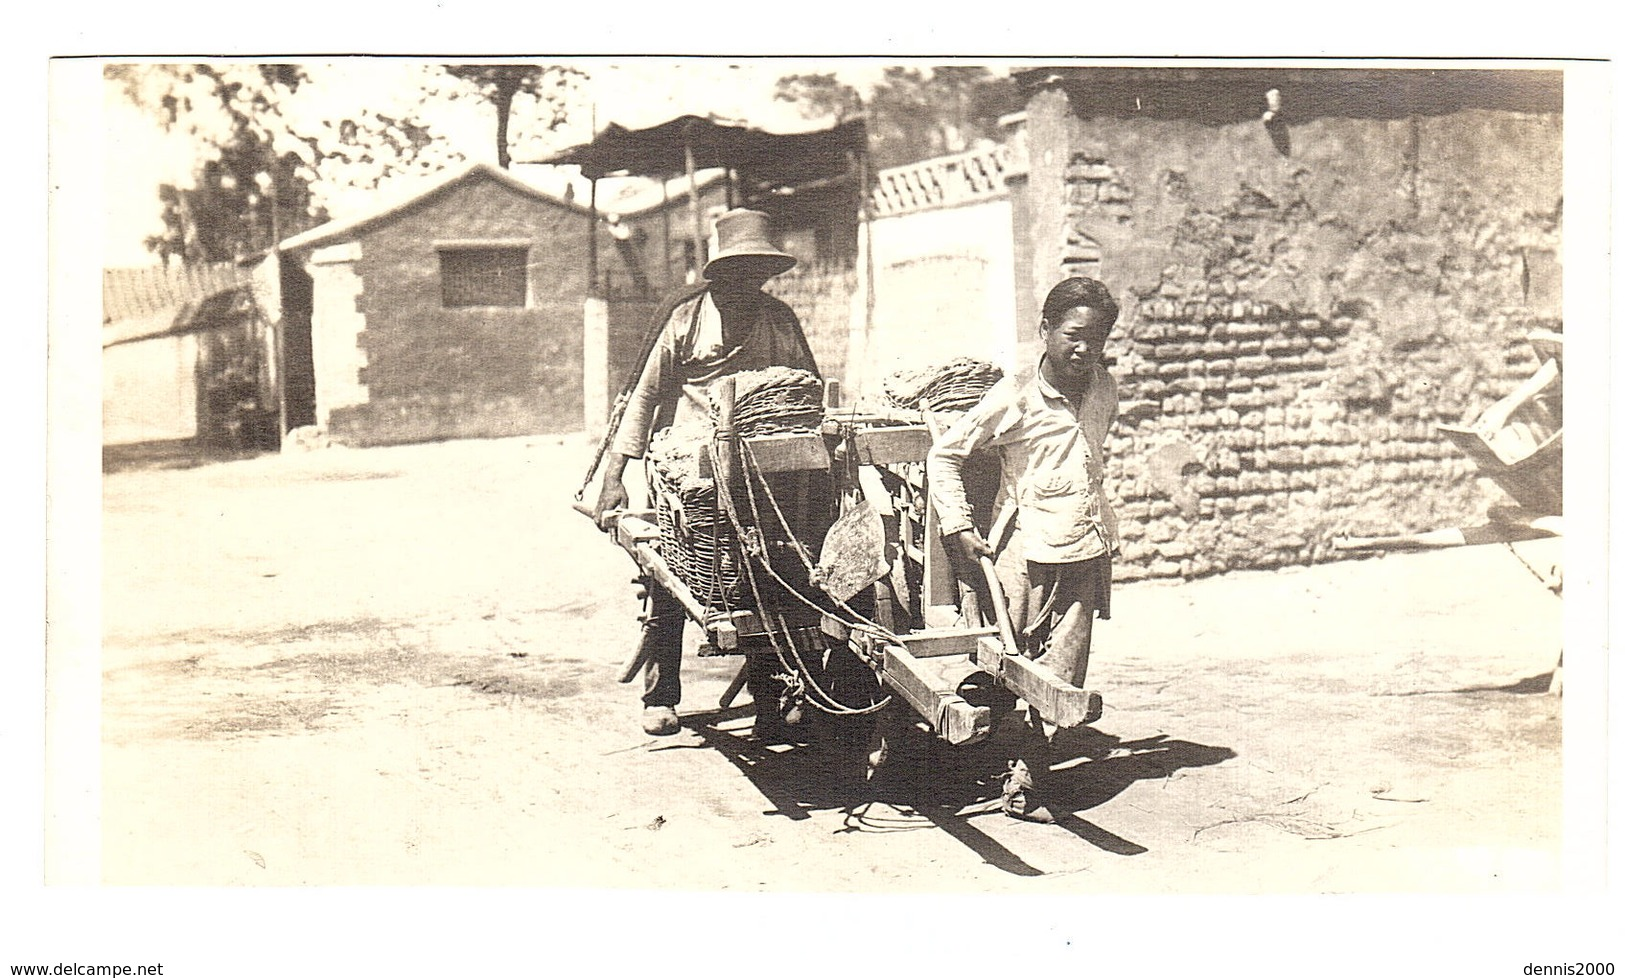 CHINE - CARTE PHOTO - PHOTO CARD - Chinois Portant Des Vivres ? - Chinese Men Carrying Something - Chine